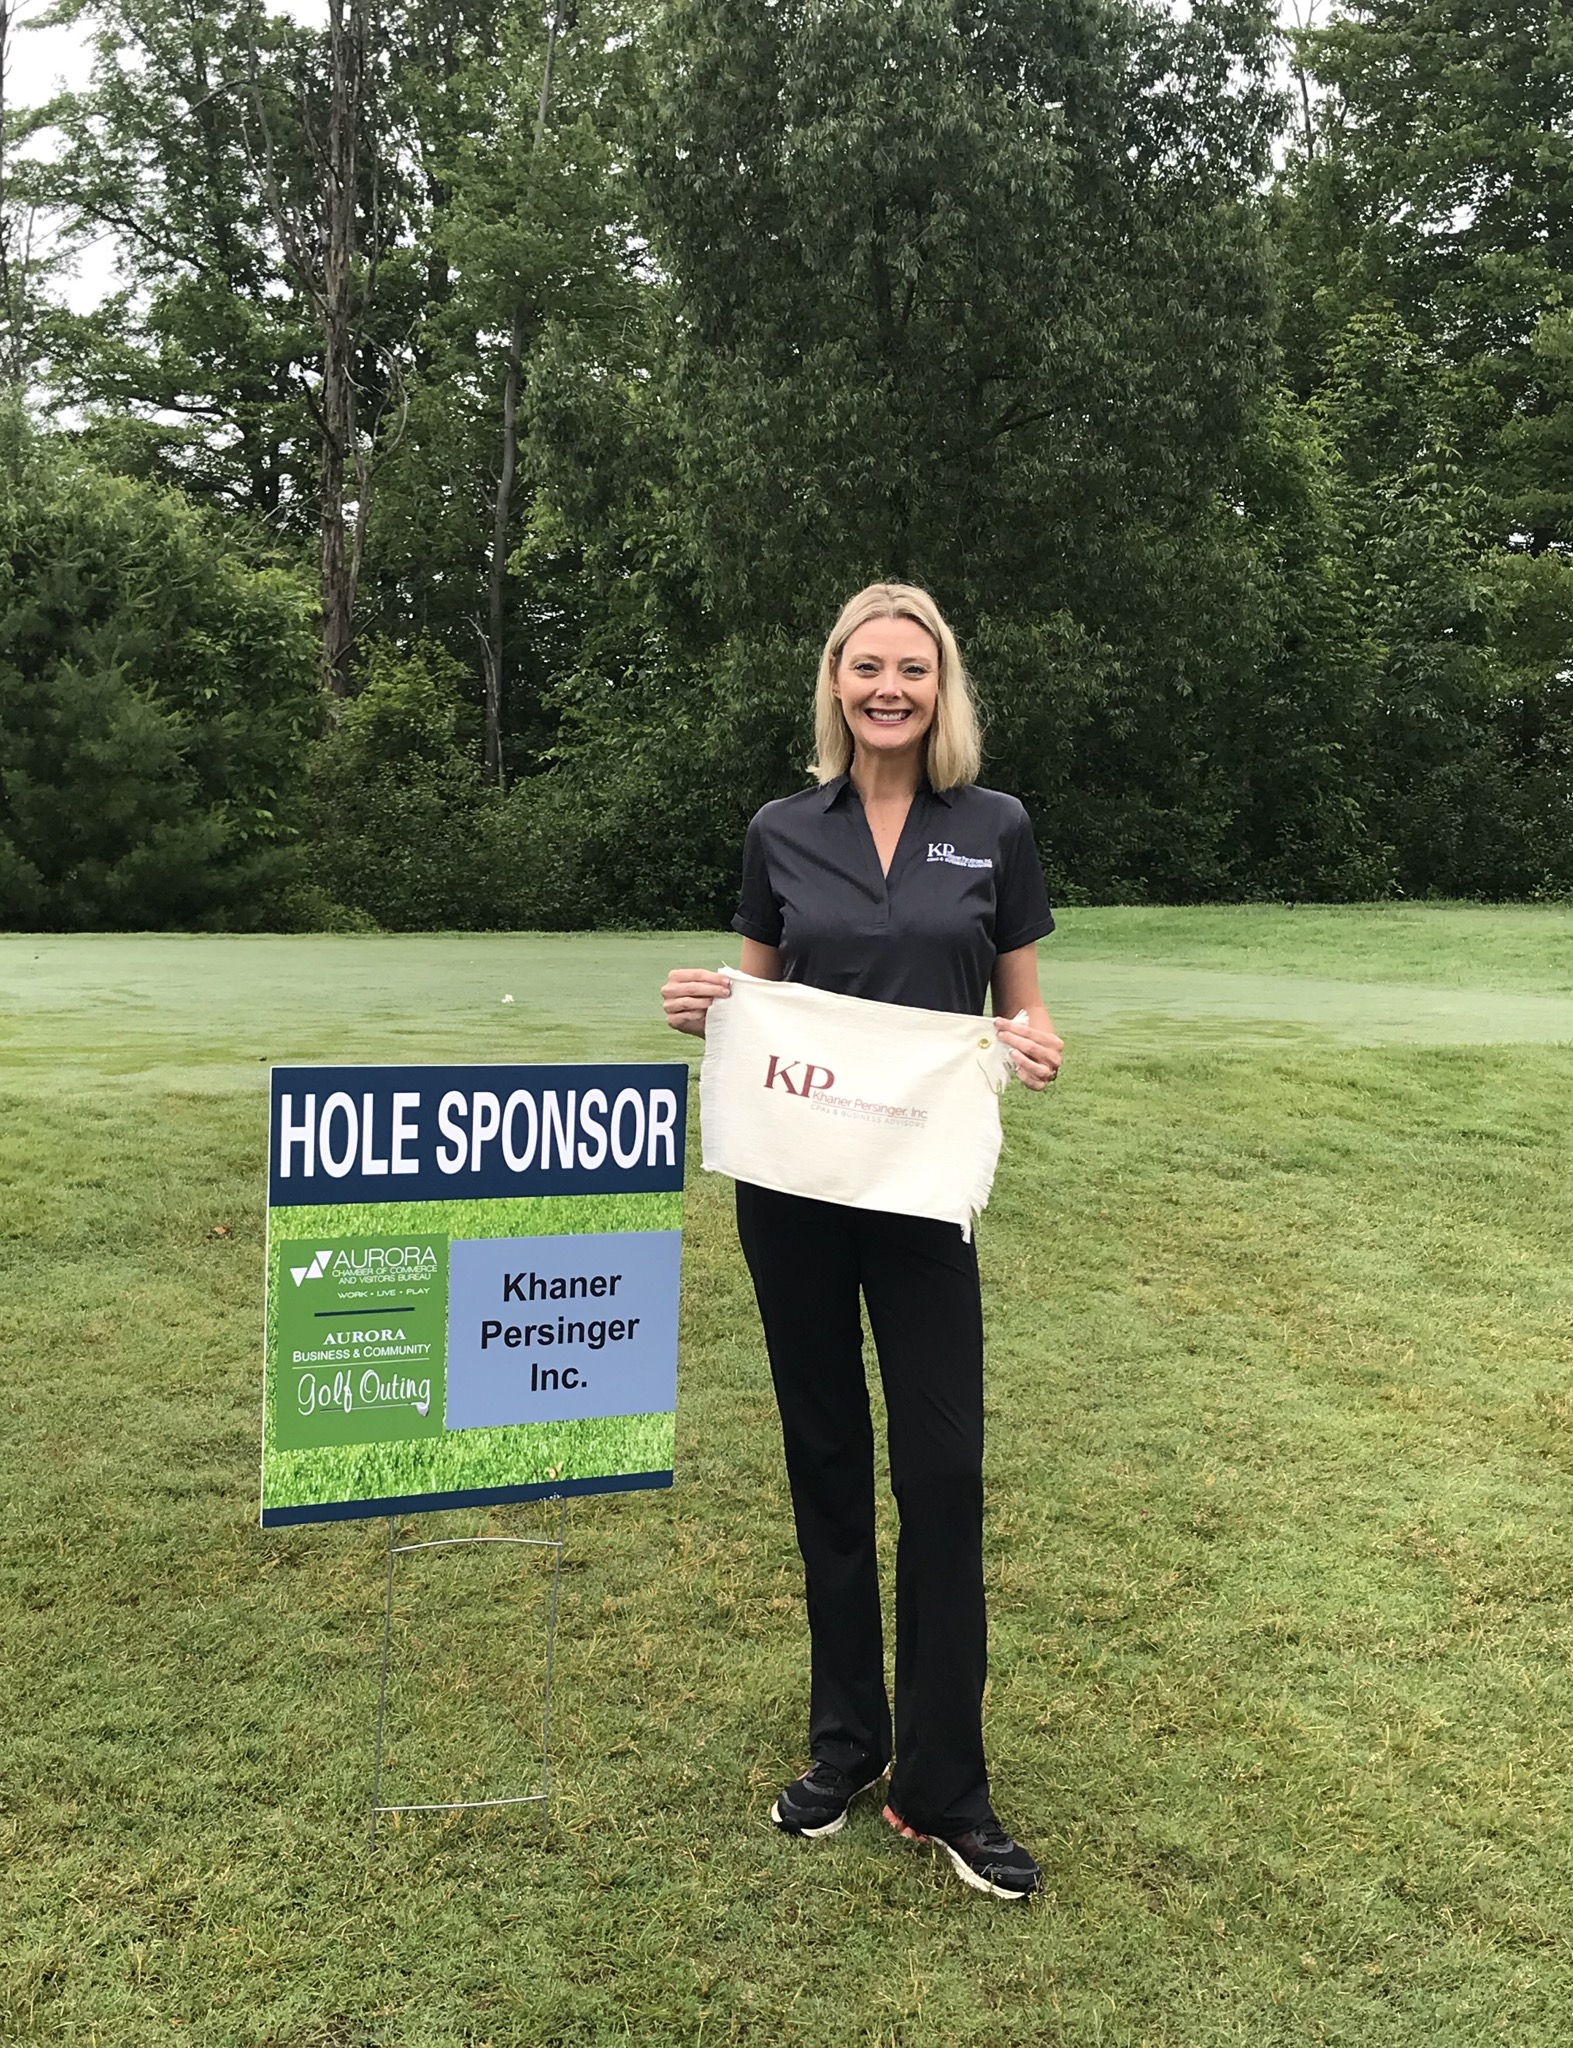 Such a fun day lead generating and passing out golf towels to the golfers at the 2019 Aurora Business & Community Golf Outing for Khaner Persinger, Inc.